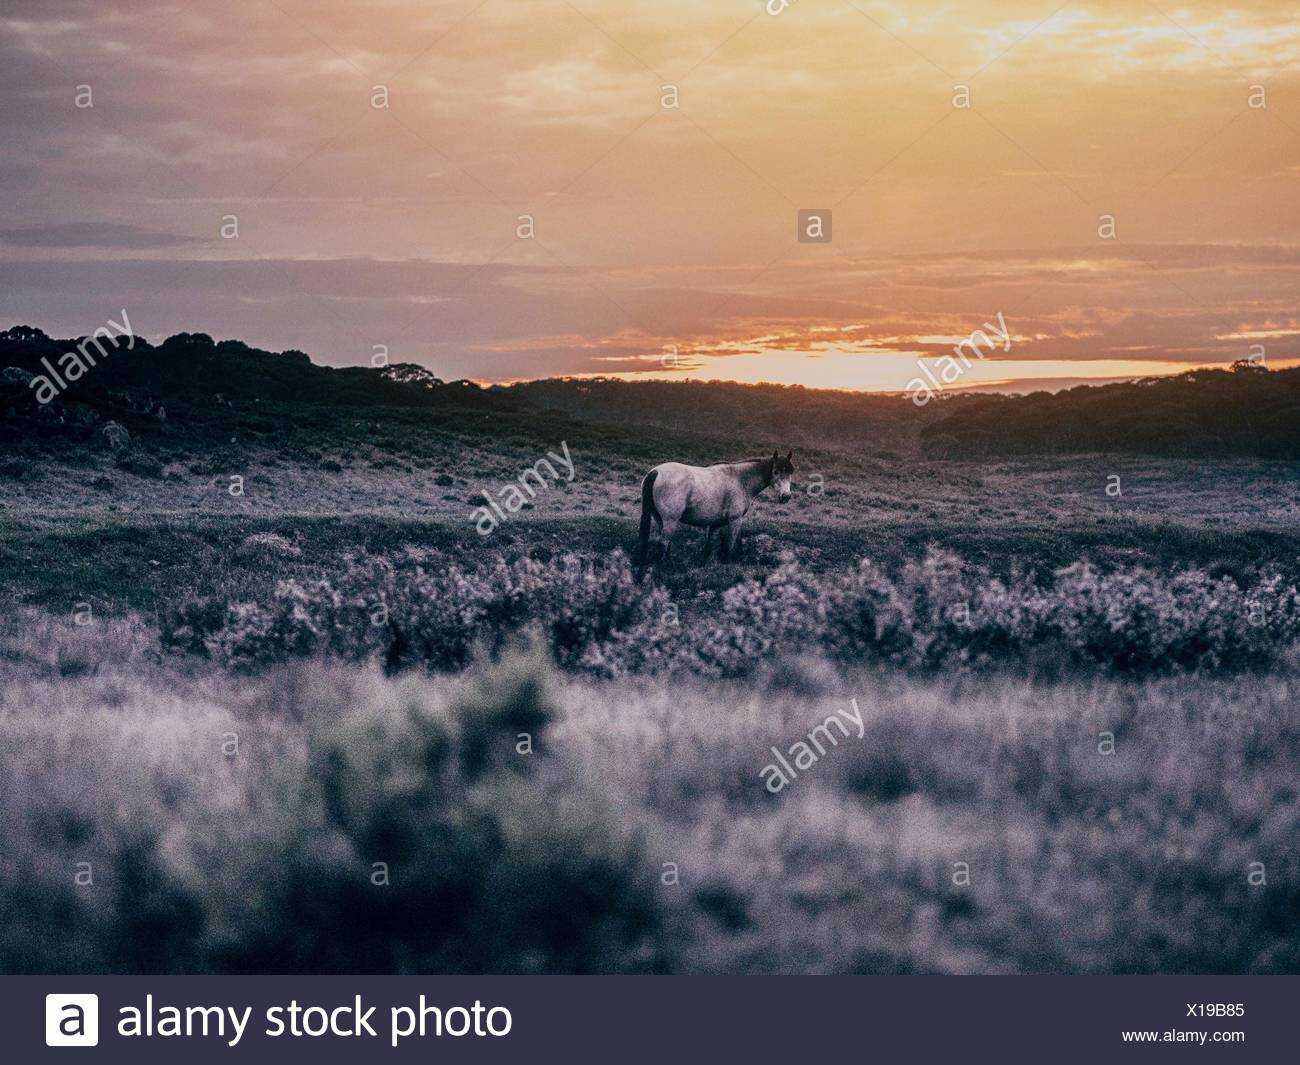 Horse On Field Against Sky During Sunset - Stock Image